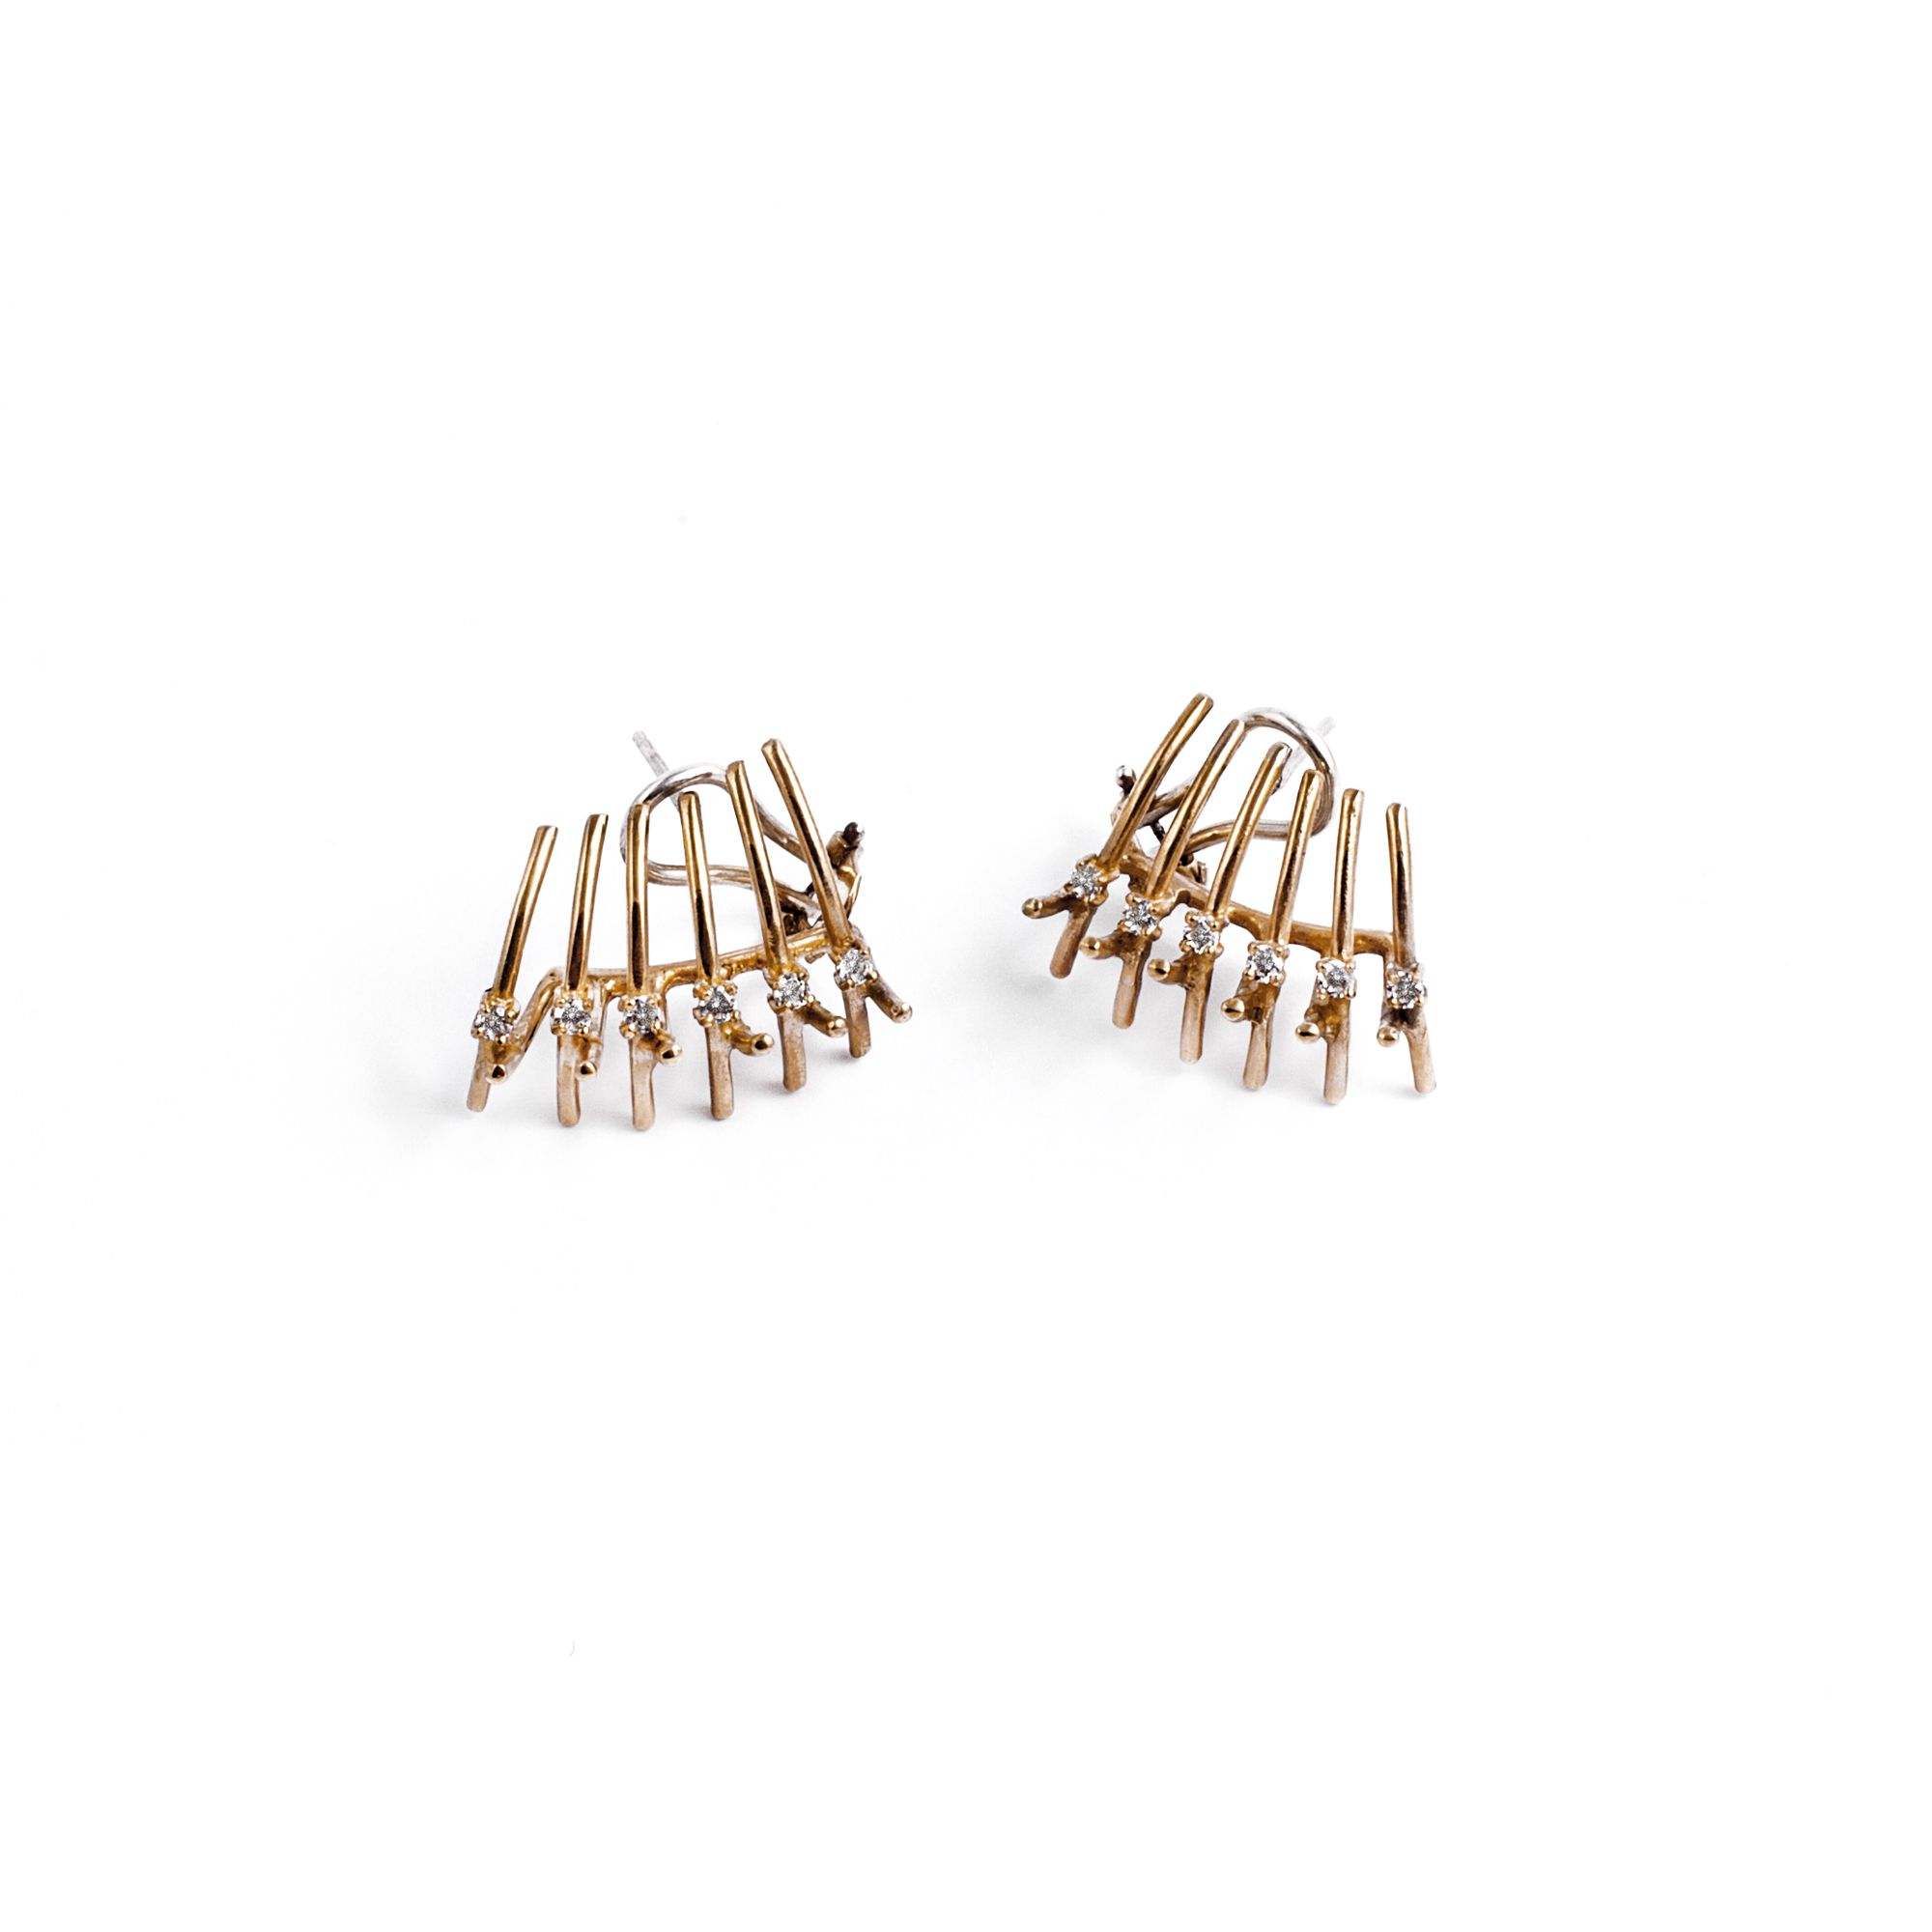 'Spinae' shell earrings Lobe earrings in bronze